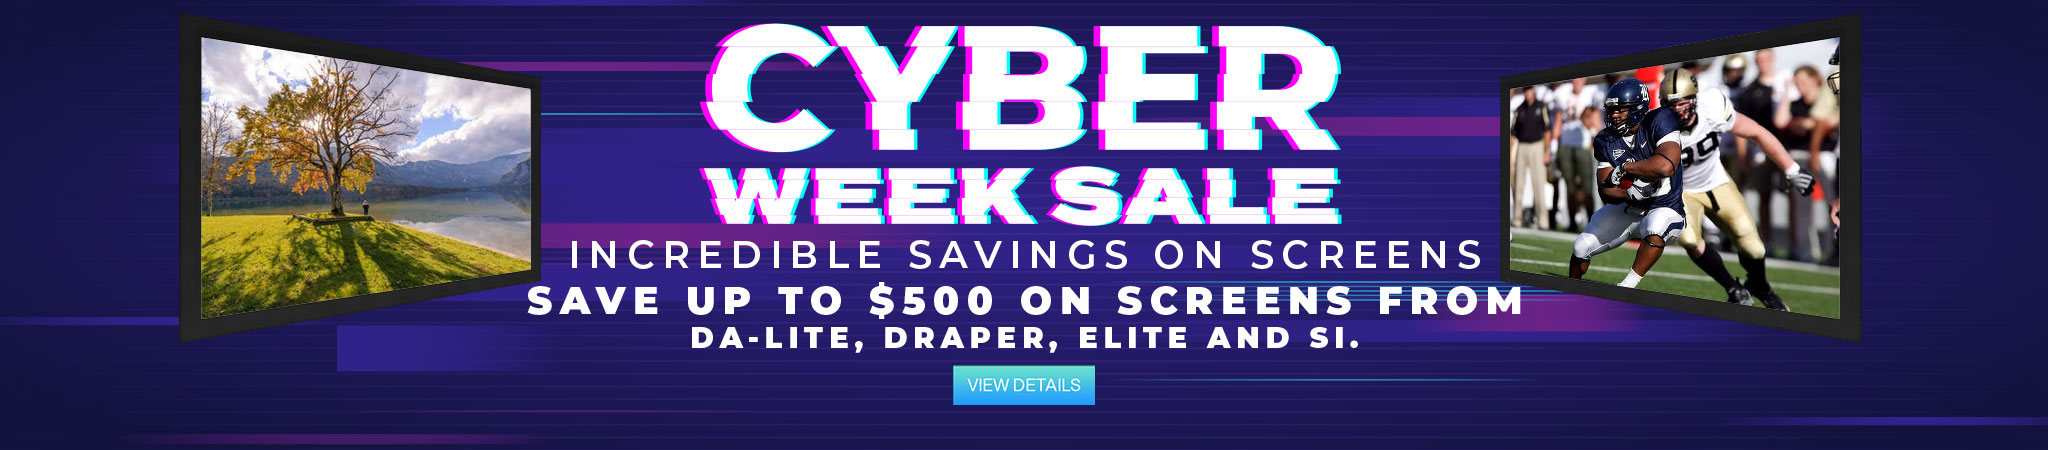 Projector People Cyber Week Screens Sale